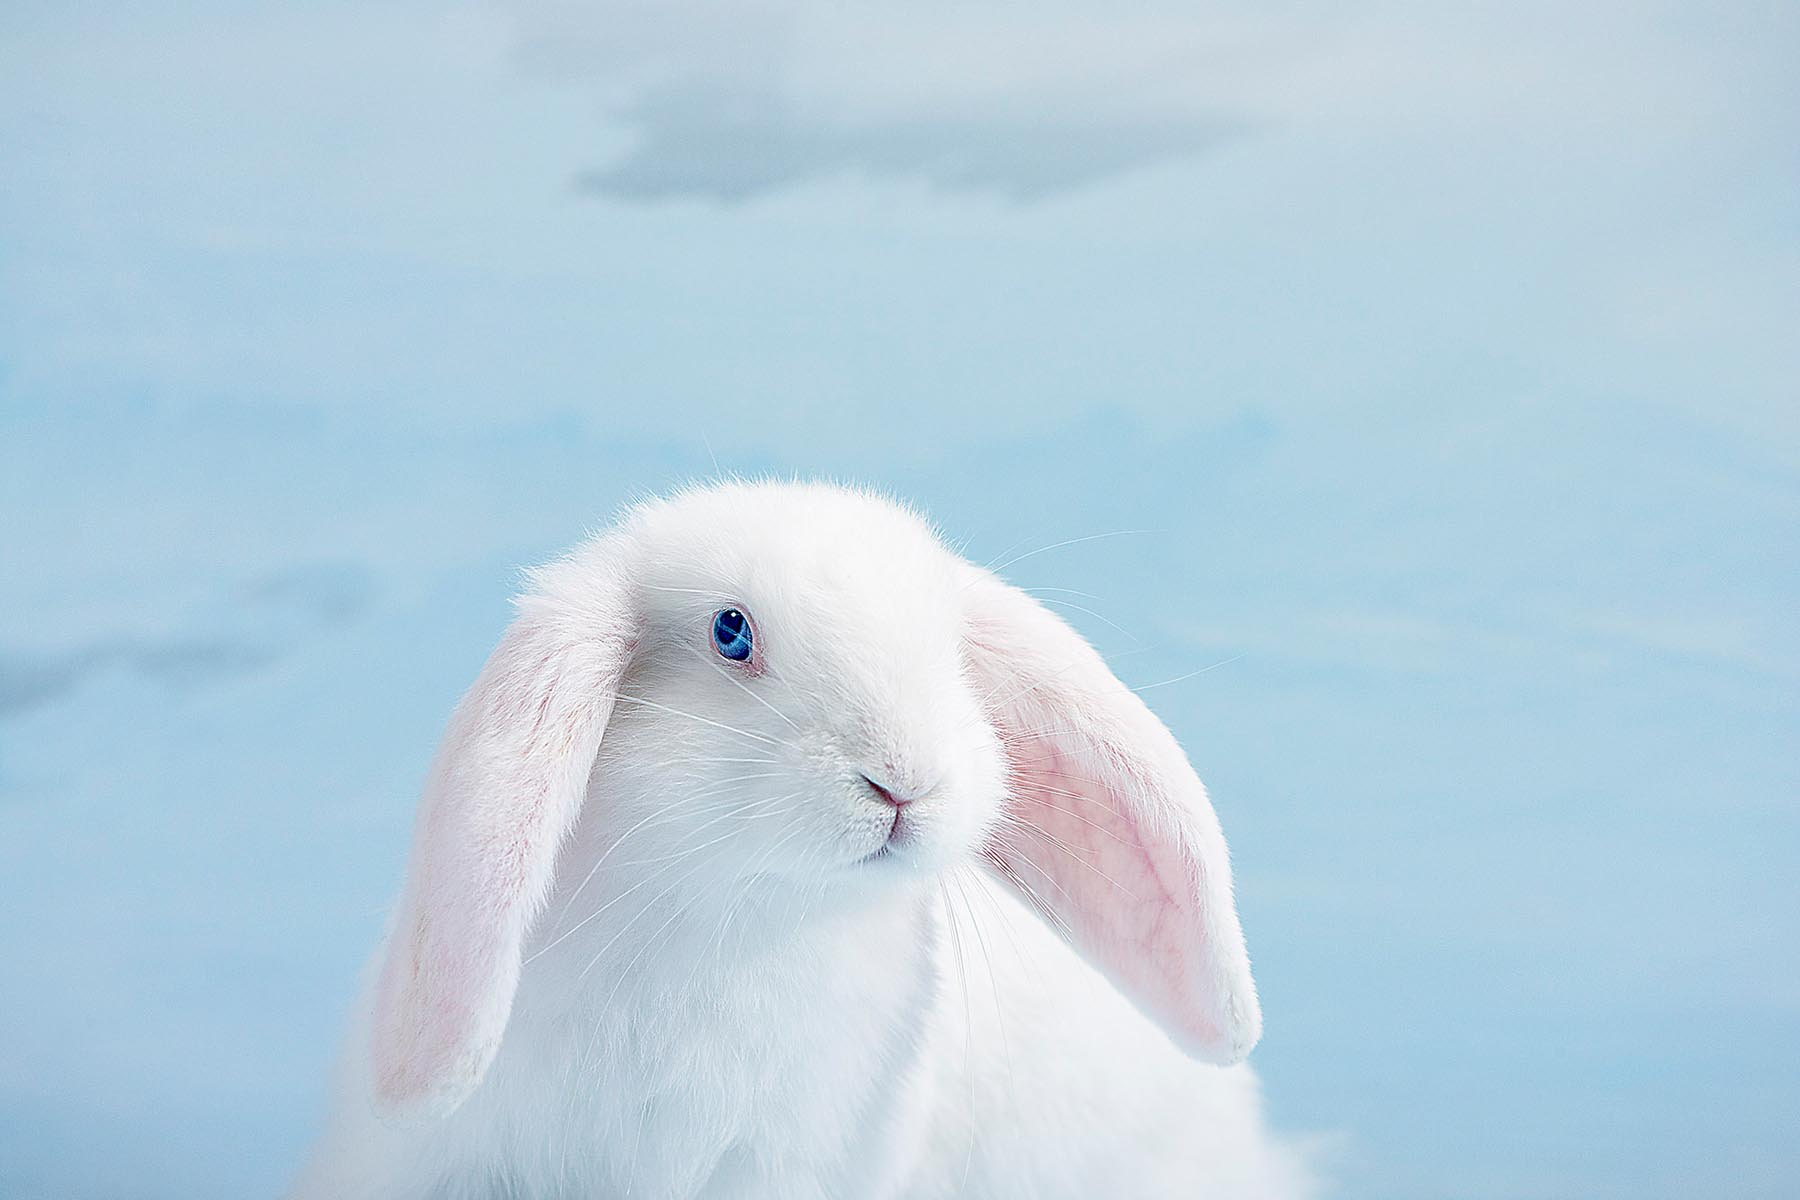 Kevin Mallett - Albino Rabbit